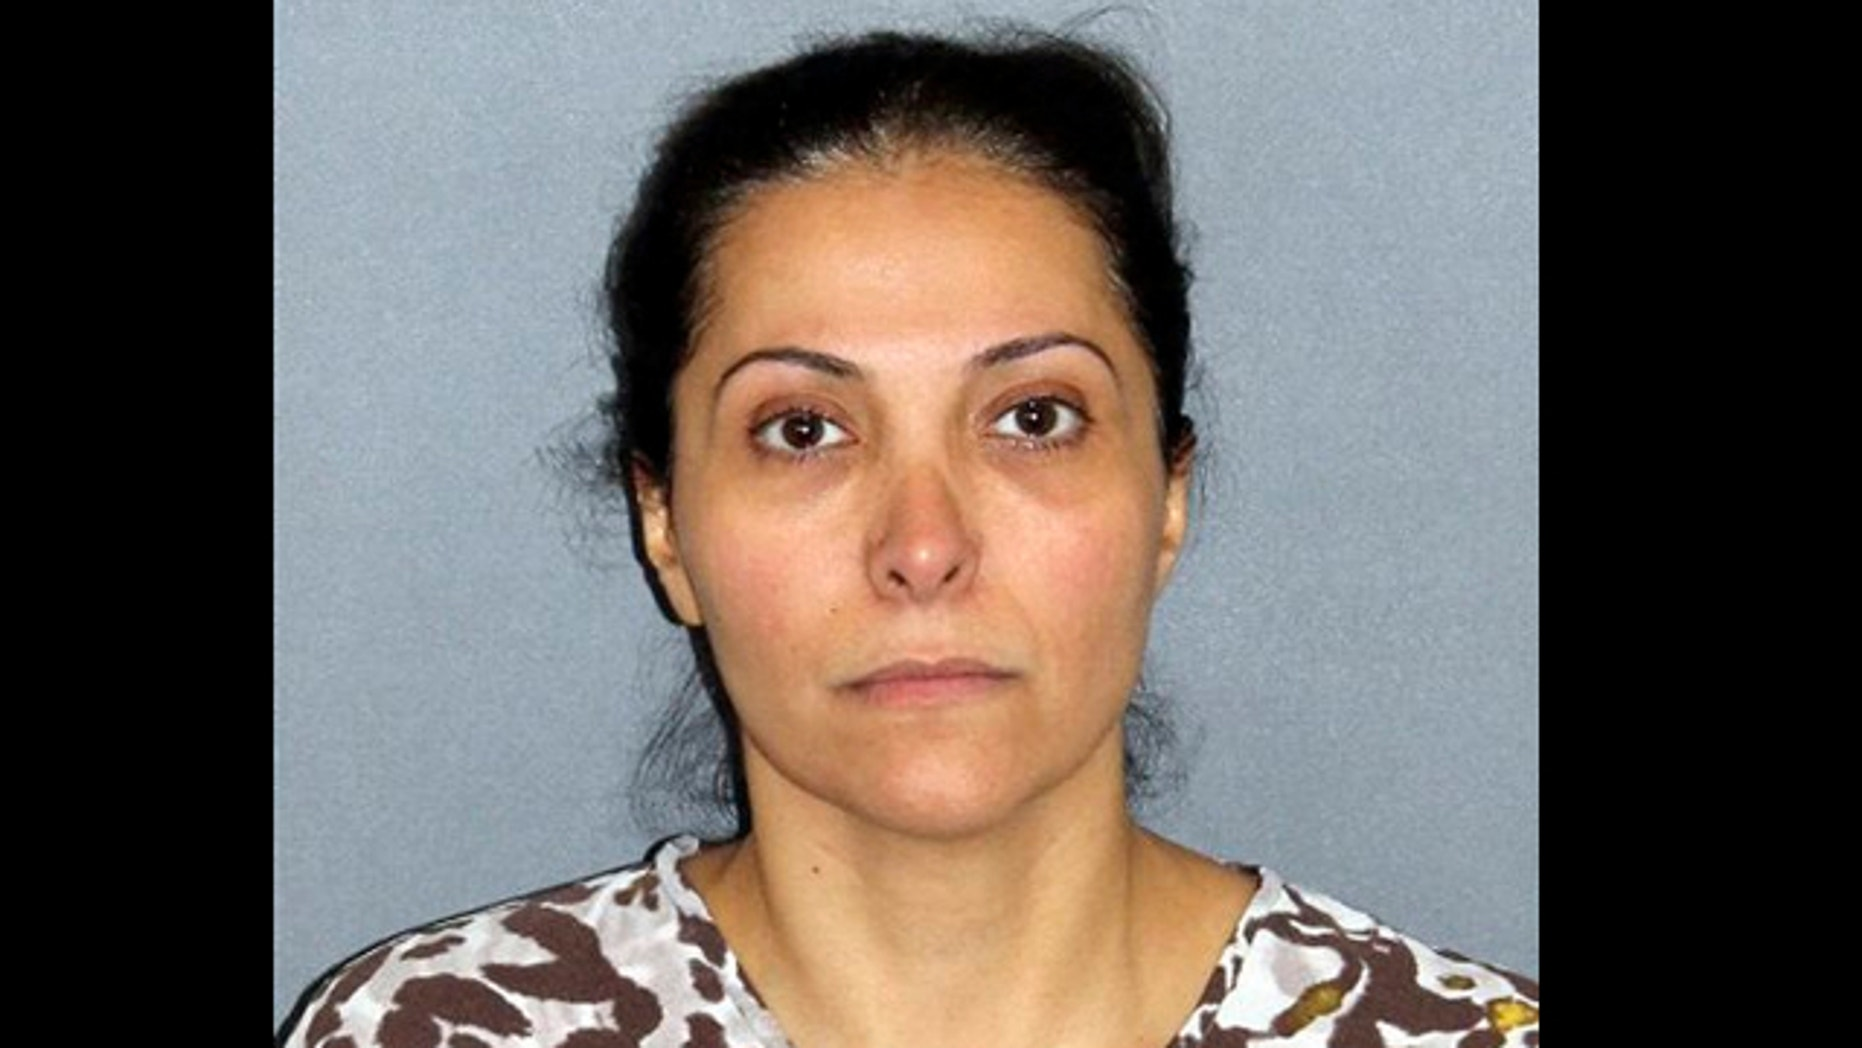 UNDATED: This image provided by the Irvine Police Department shows Meshael Alayban, who was arrested July 9, 2013 in Irvine, Calif., for allegedly holding a domestic servant against her will.